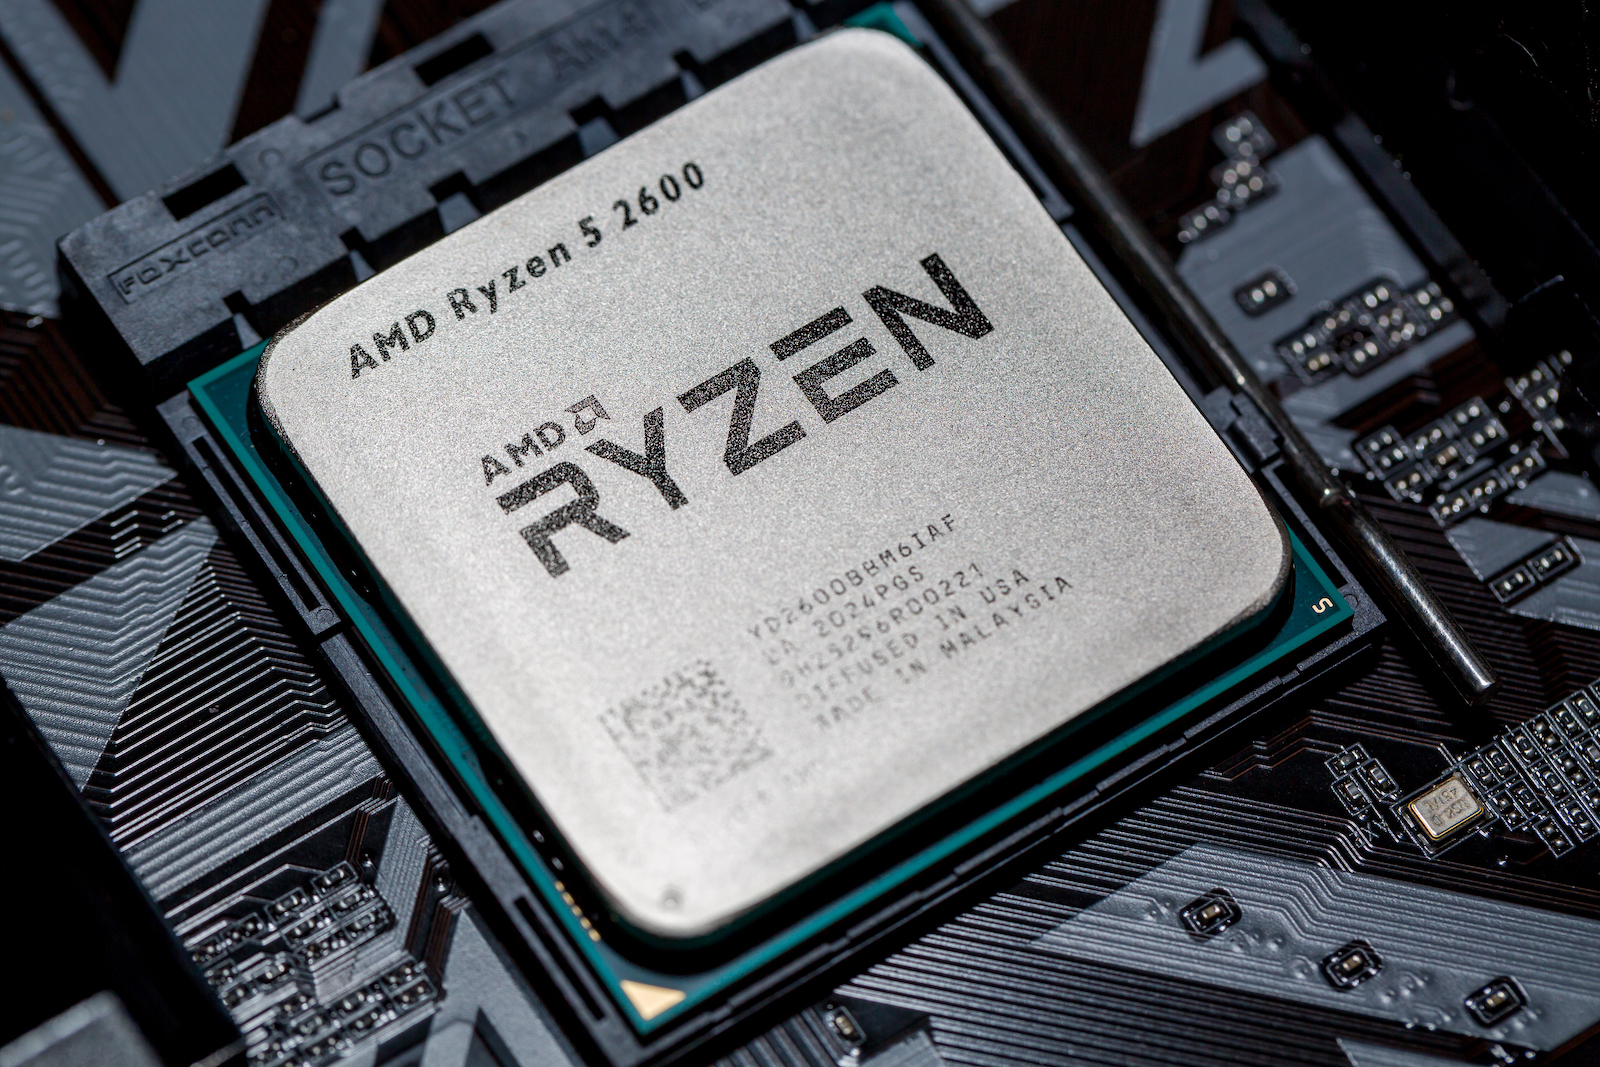 Moscow, Russia - October, 2020: AMD Ryzen 5 2600 Processor close up in the black motherboard CPU socket. Advanced Micro Devices is an American semiconductor company based in Santa Clara, California.